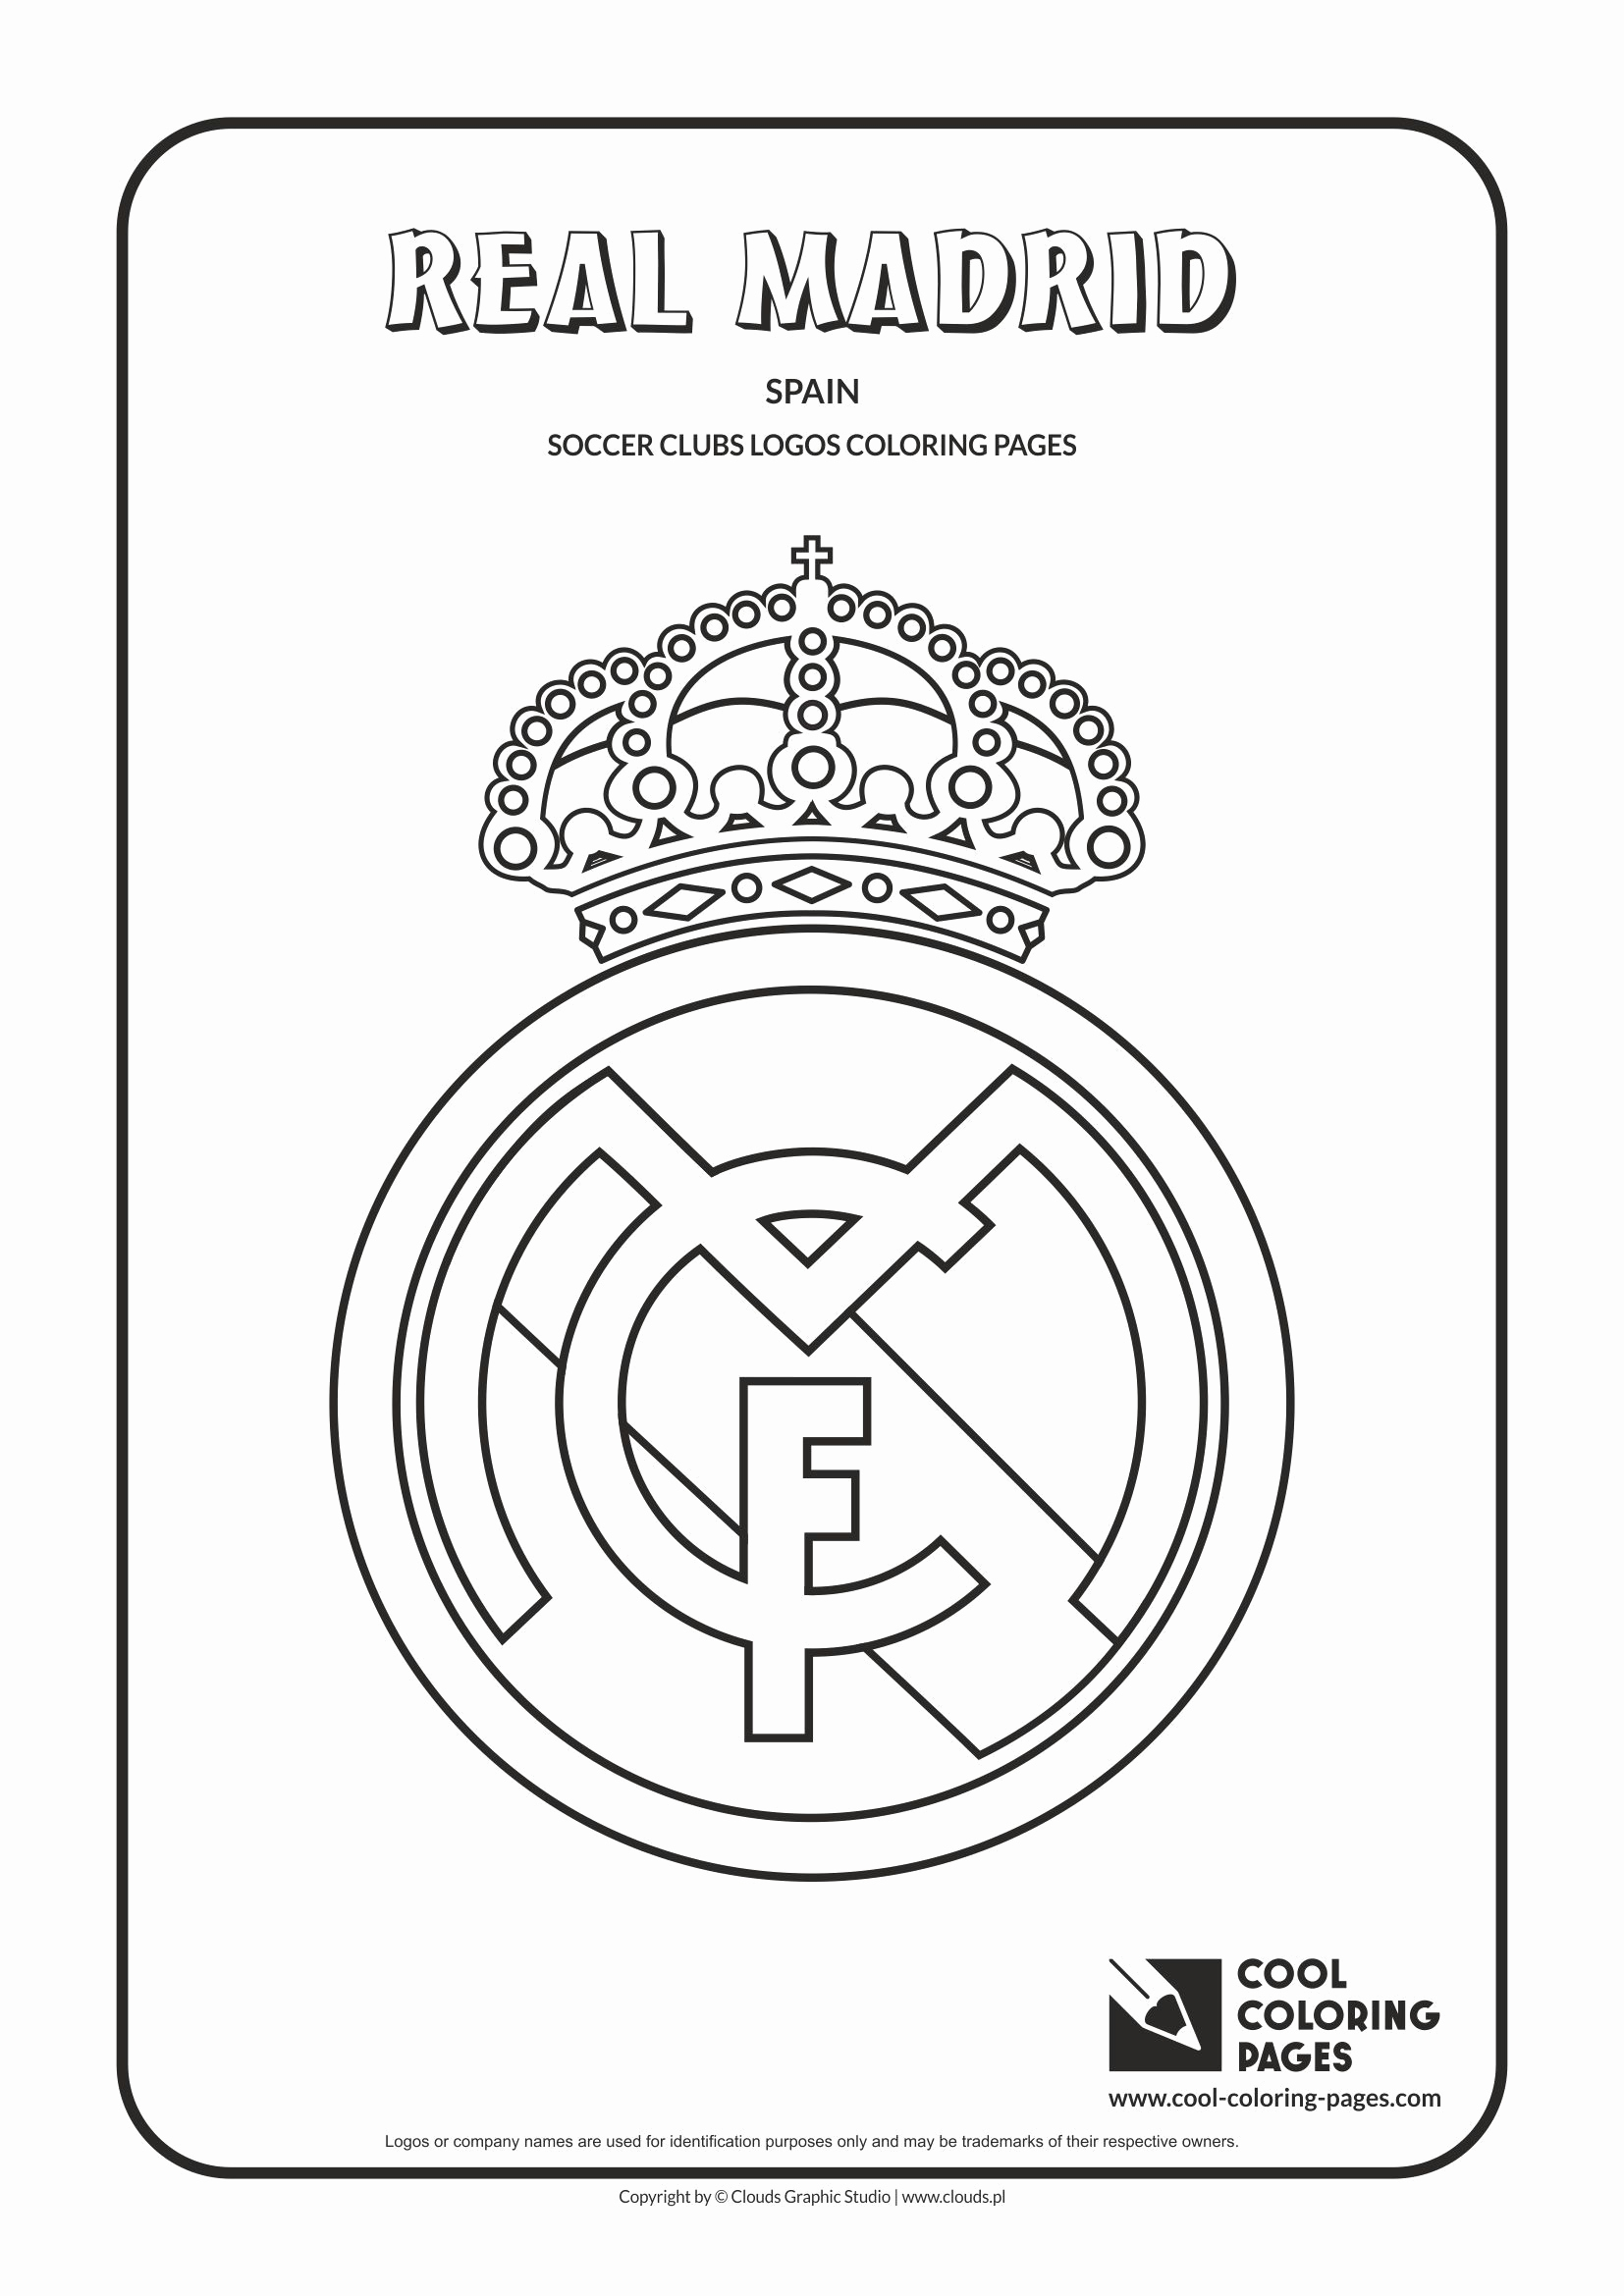 Bvb Ausmalbilder Zum Ausdrucken Best Cool Coloring Pages Others Real Madrid Logo Coloring Page with